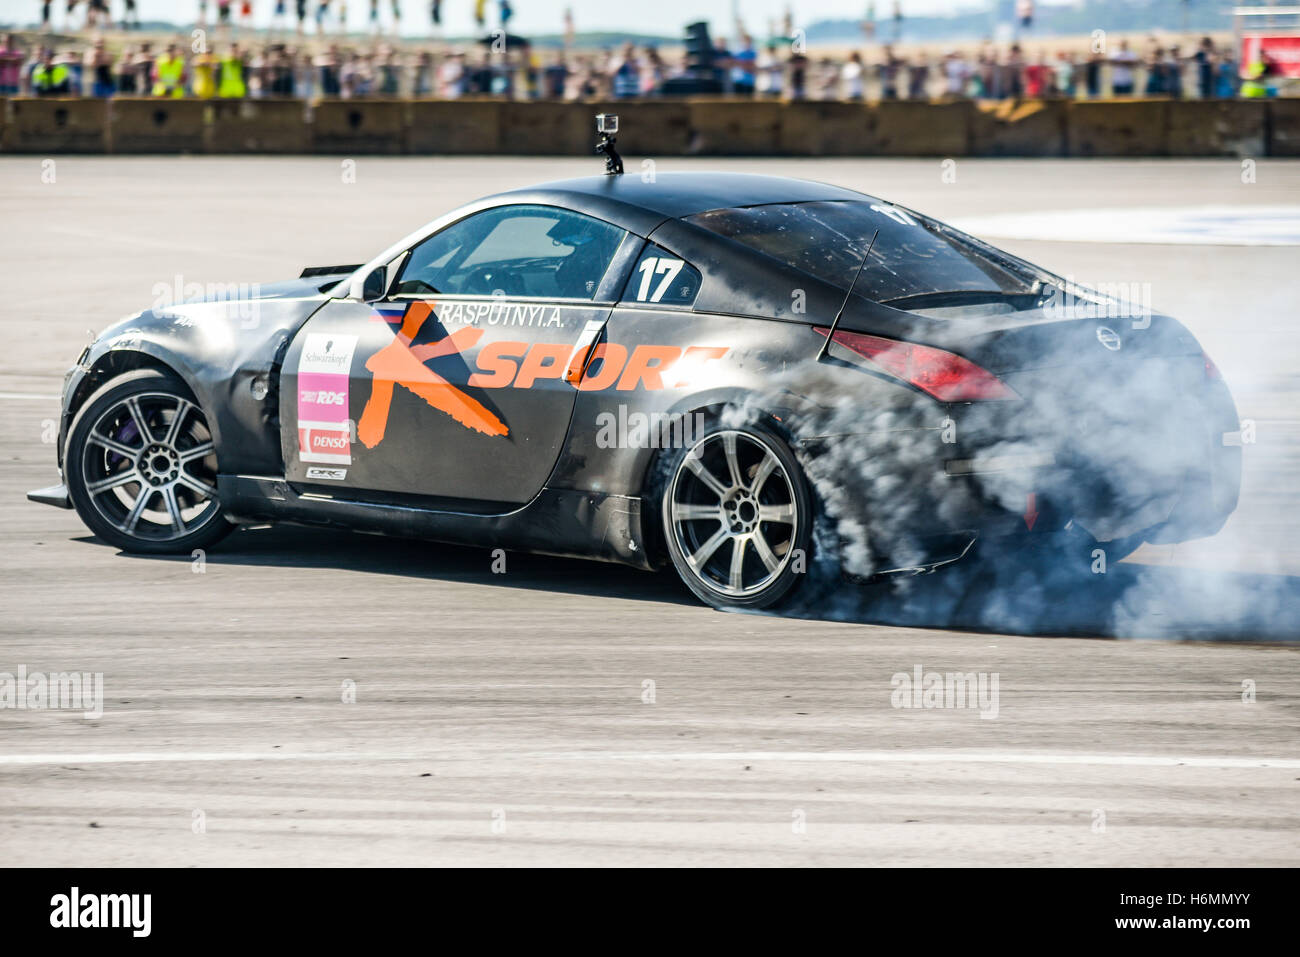 Rx8 Stock Photos & Rx8 Stock Images - Alamy